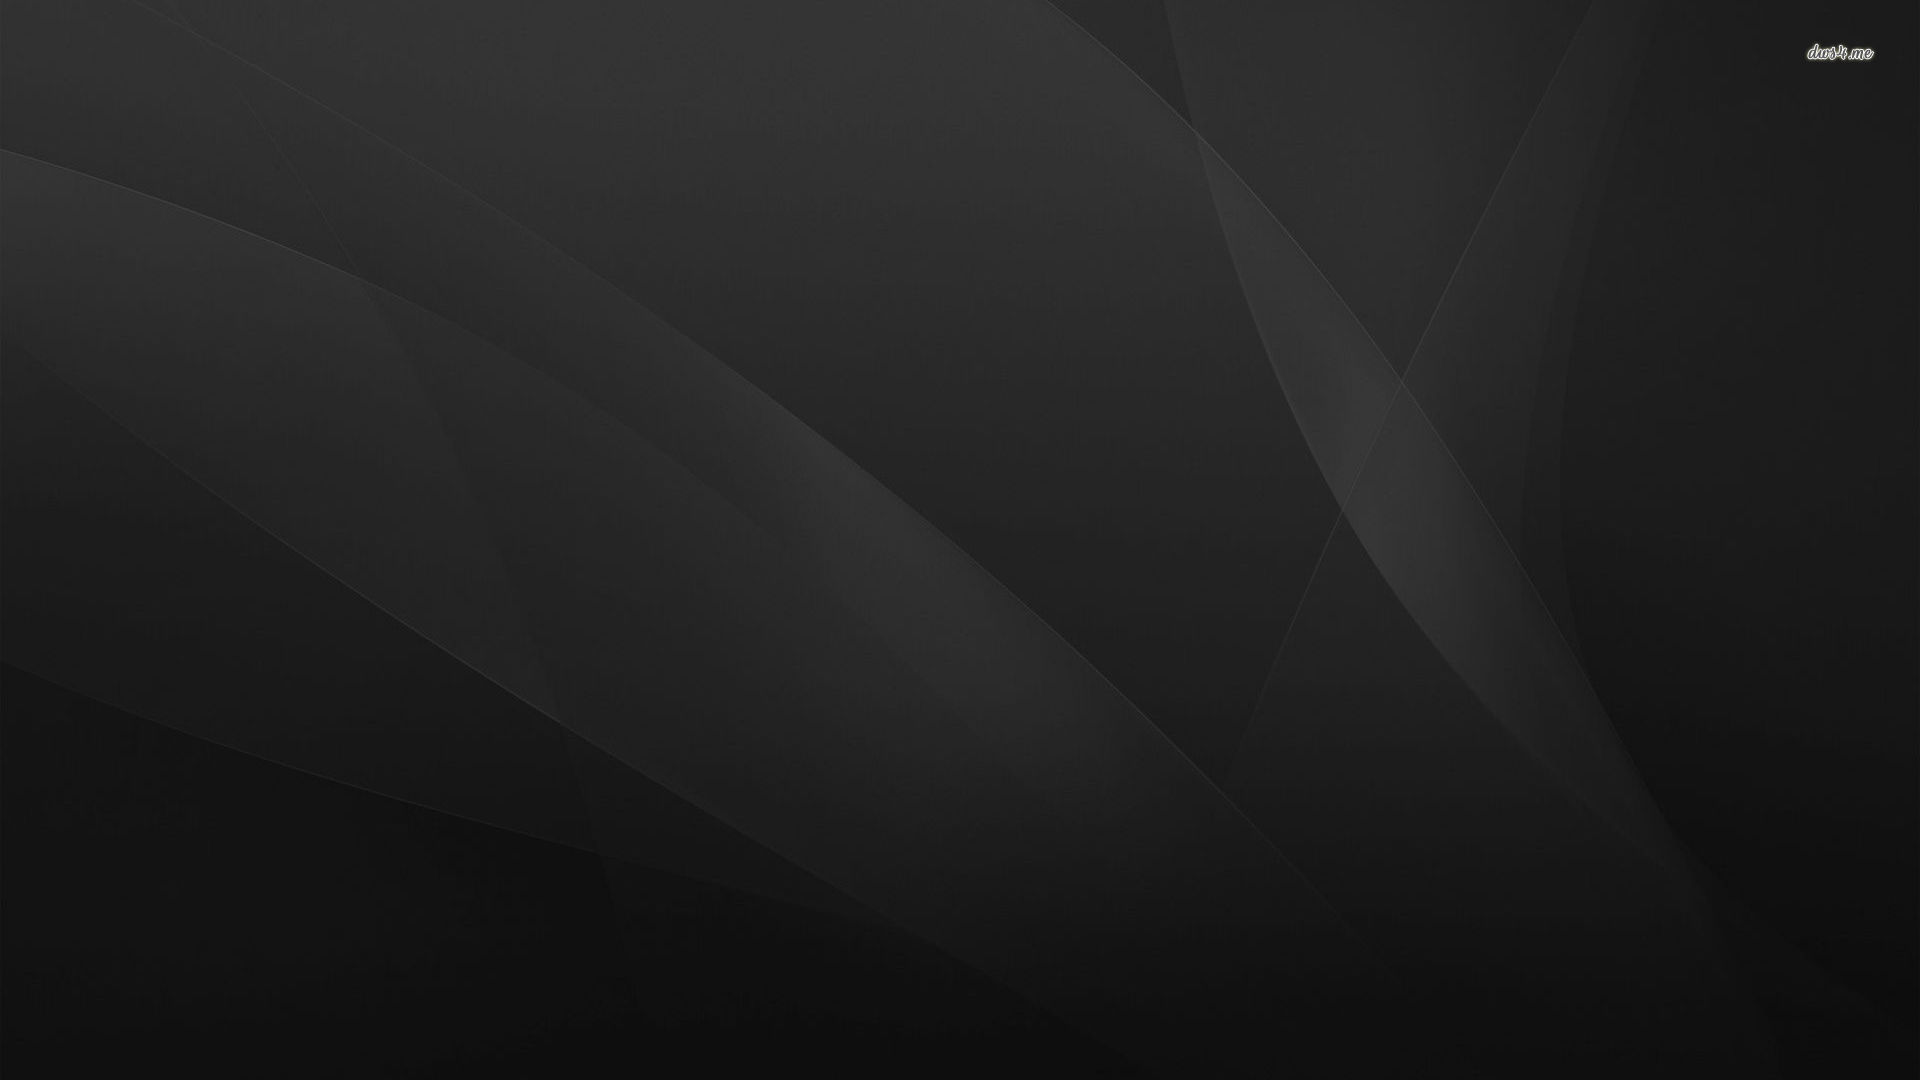 Simple dark wallpaper wallpapersafari for Black and grey wallpaper designs